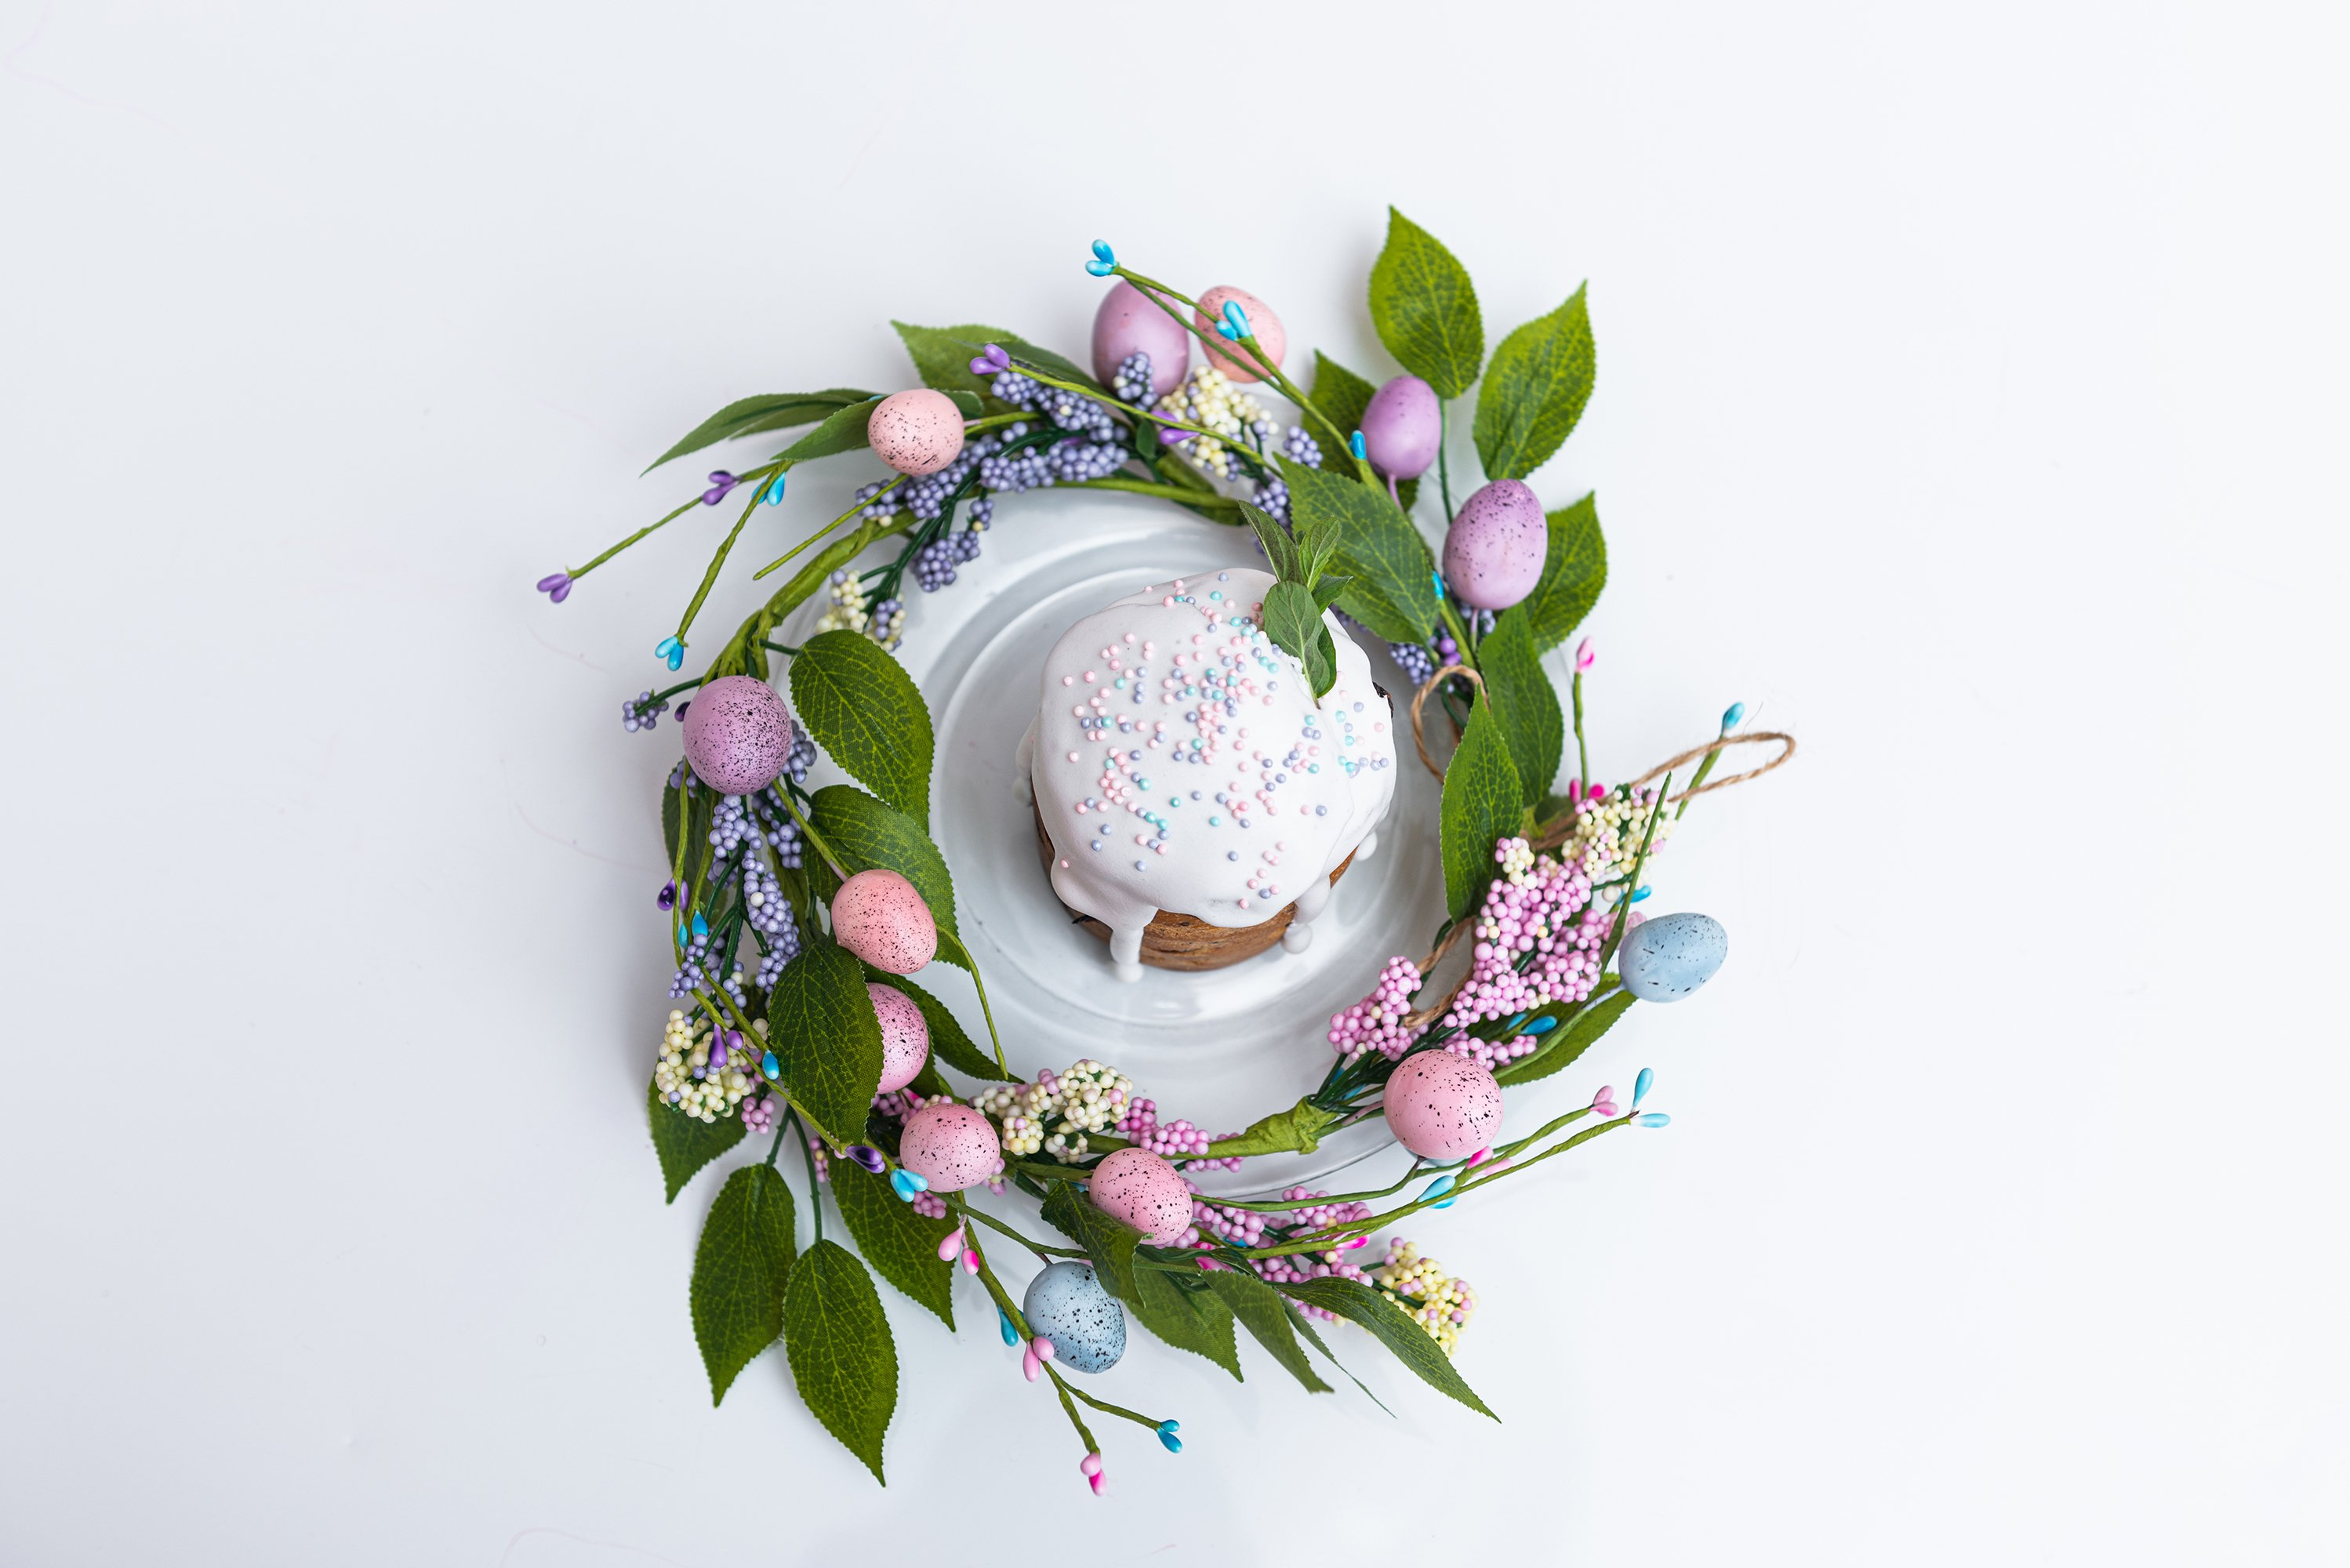 Easter cake in the center of a wreath of spring flowers example image 1